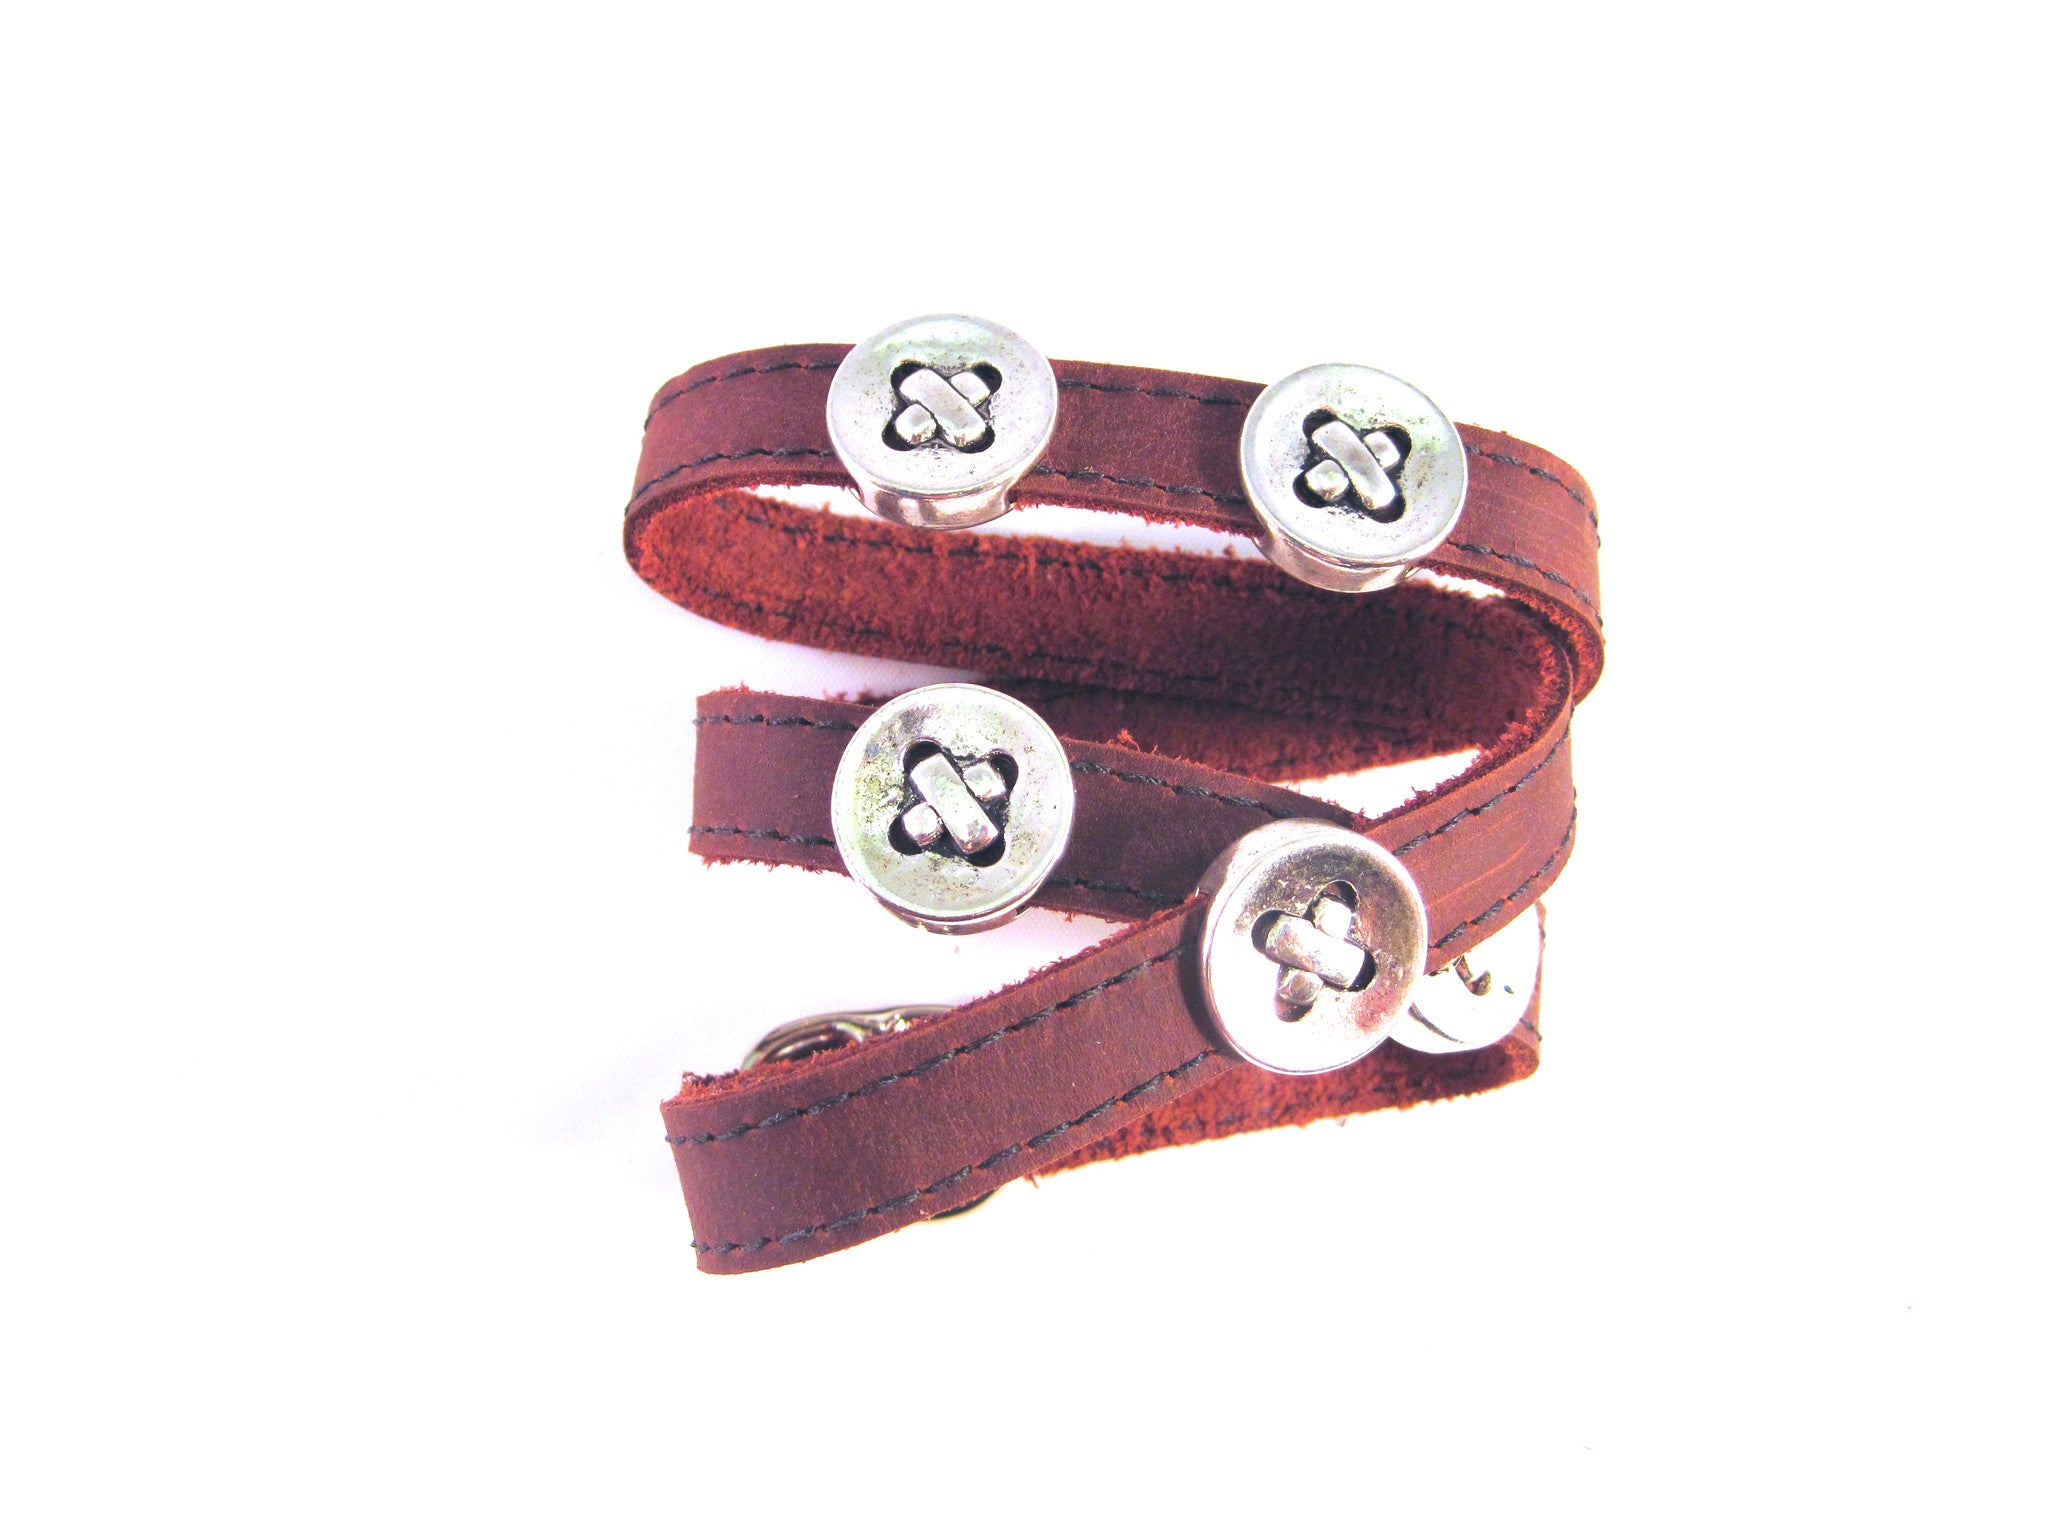 LEATHER WRAPAROUND WITH FIVE METAL BUTTONS by nyet jewelry.